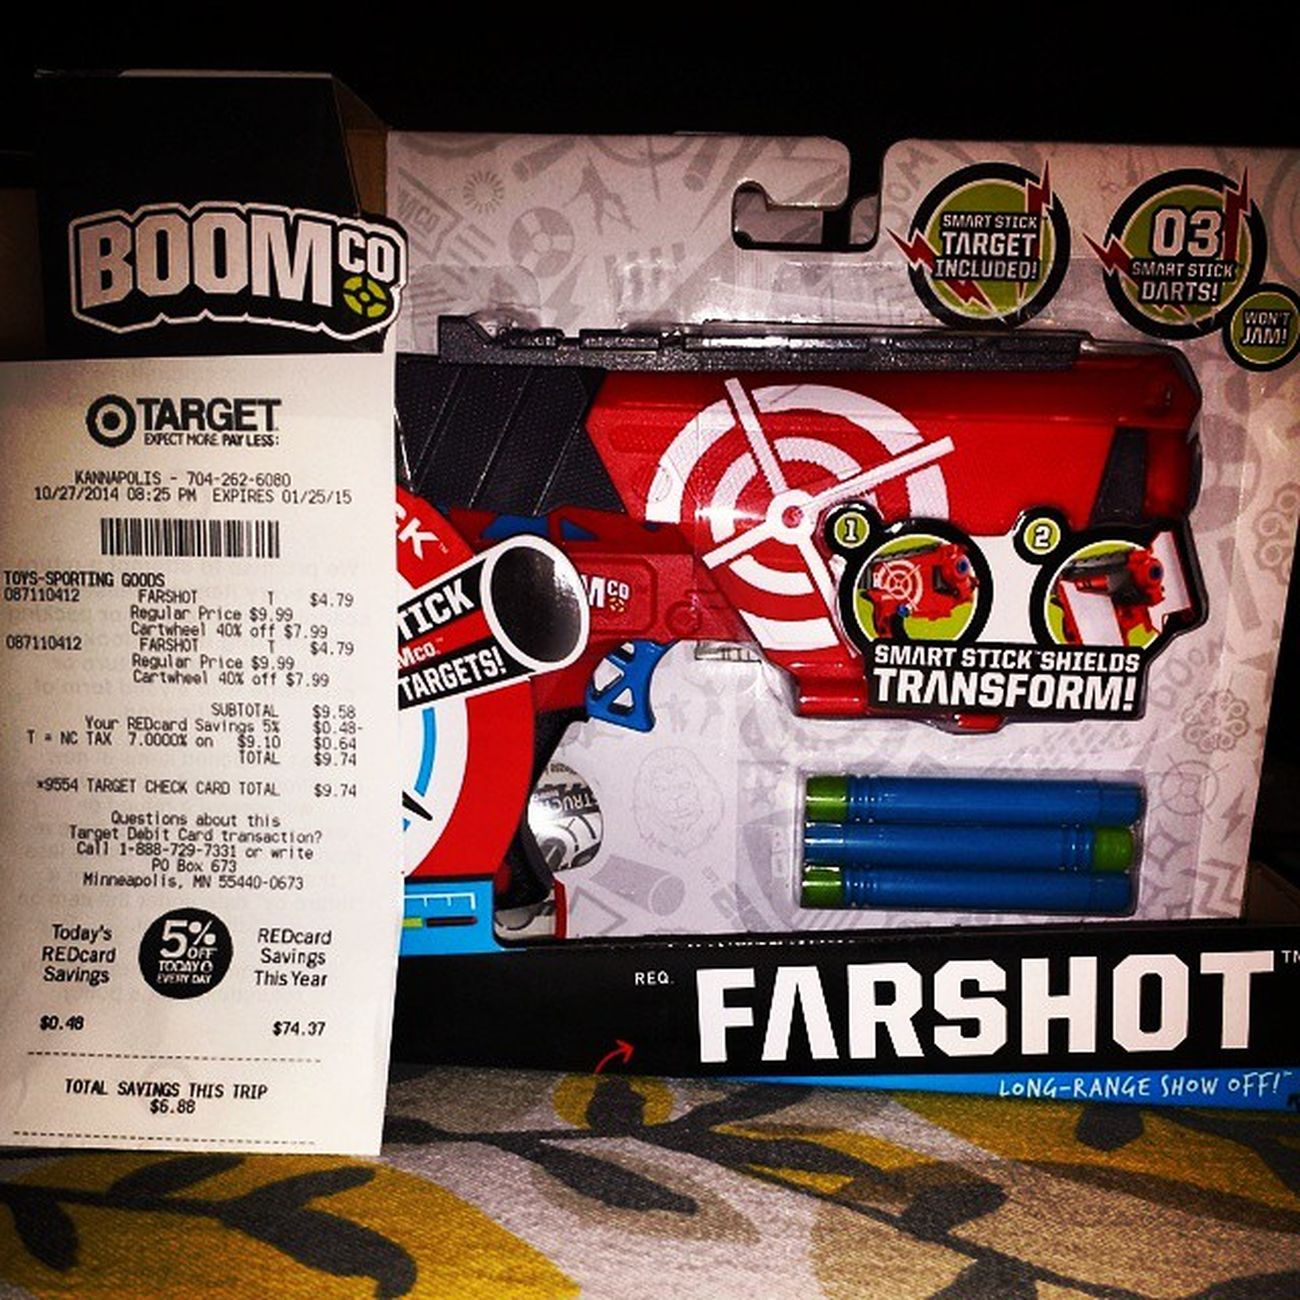 Great deal at Target that ends tomorrow. Buy two Boomco Farshot guns at $9.99 and pm to Amazon for $7.99 then use Targetcartwheel Cartwheel which takes 40% off both. The total with RedCard is $9.74! That's less than the price of 1. Savvyshopper Earlychristmasshopping Dealseeker